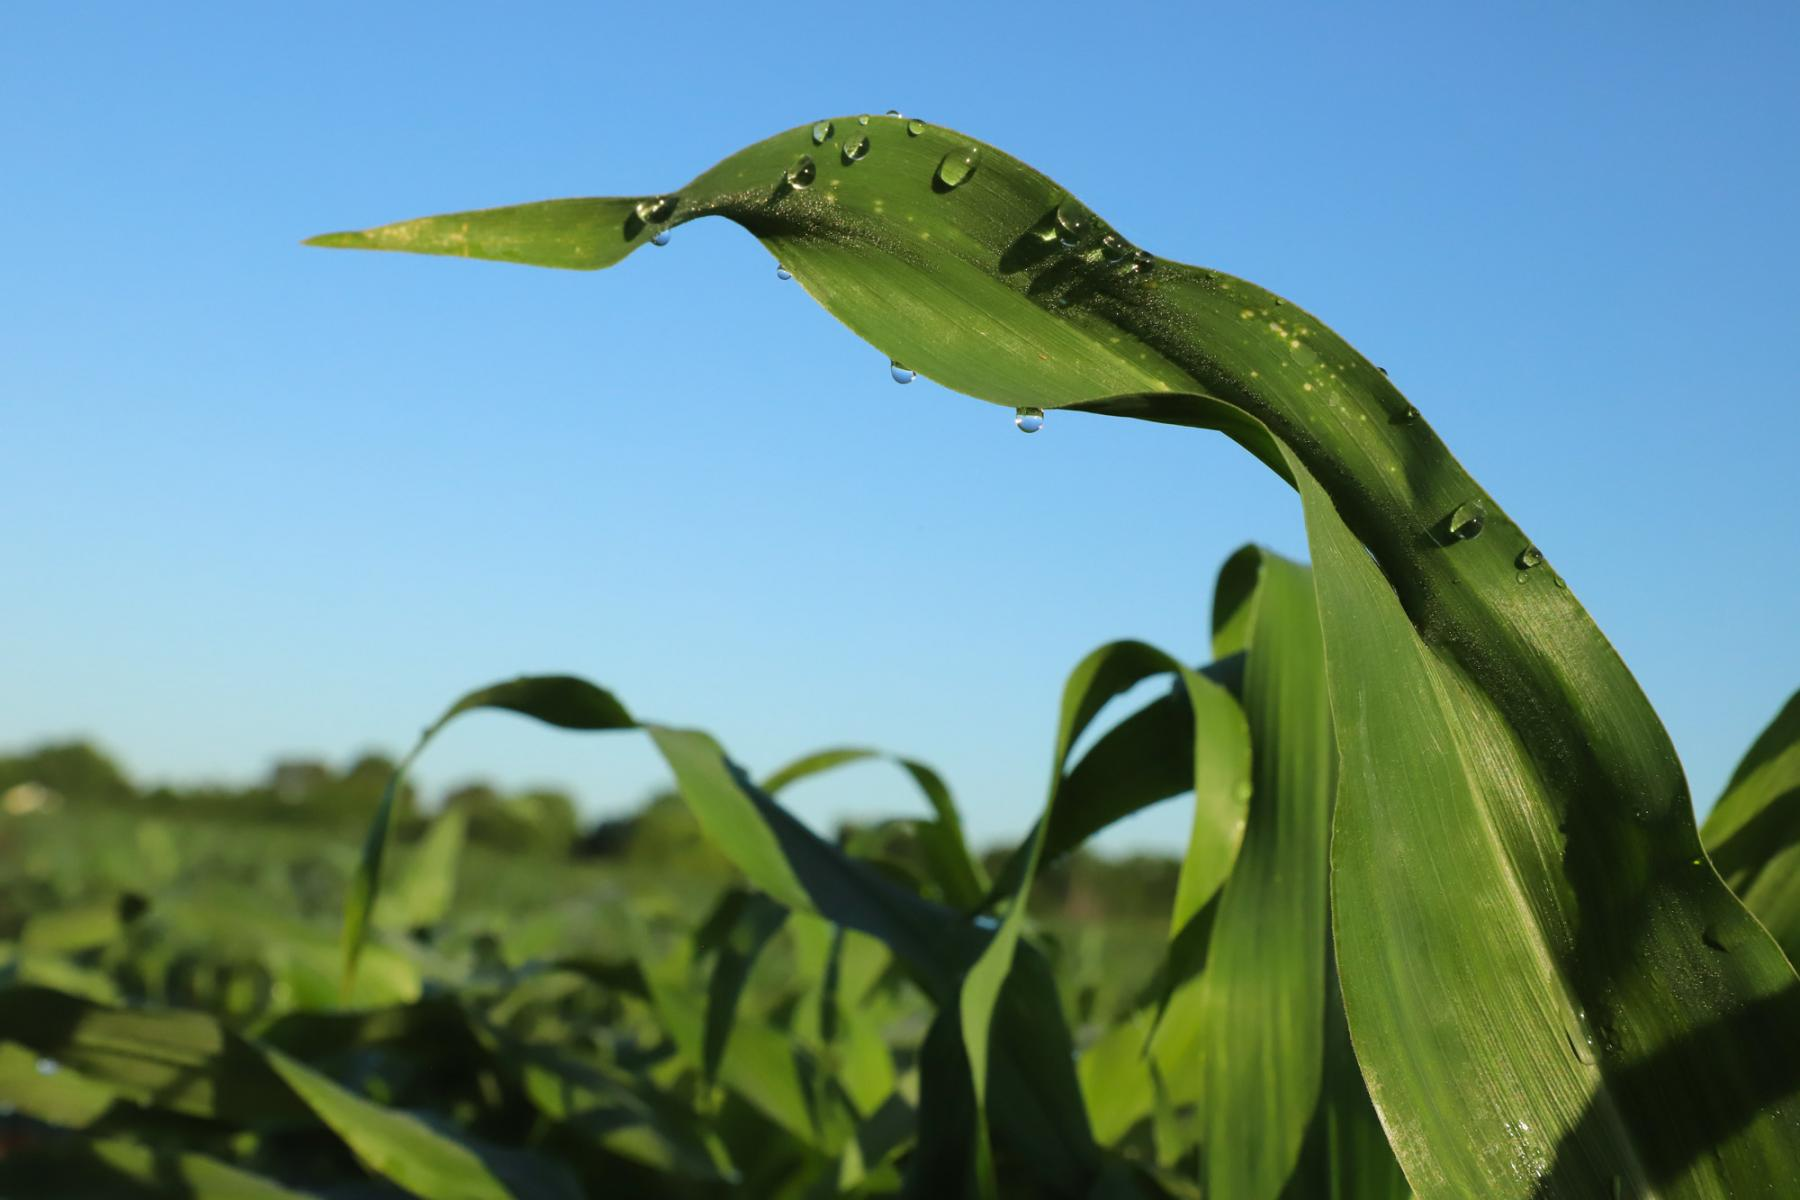 Guttation drops hang from corn leaves